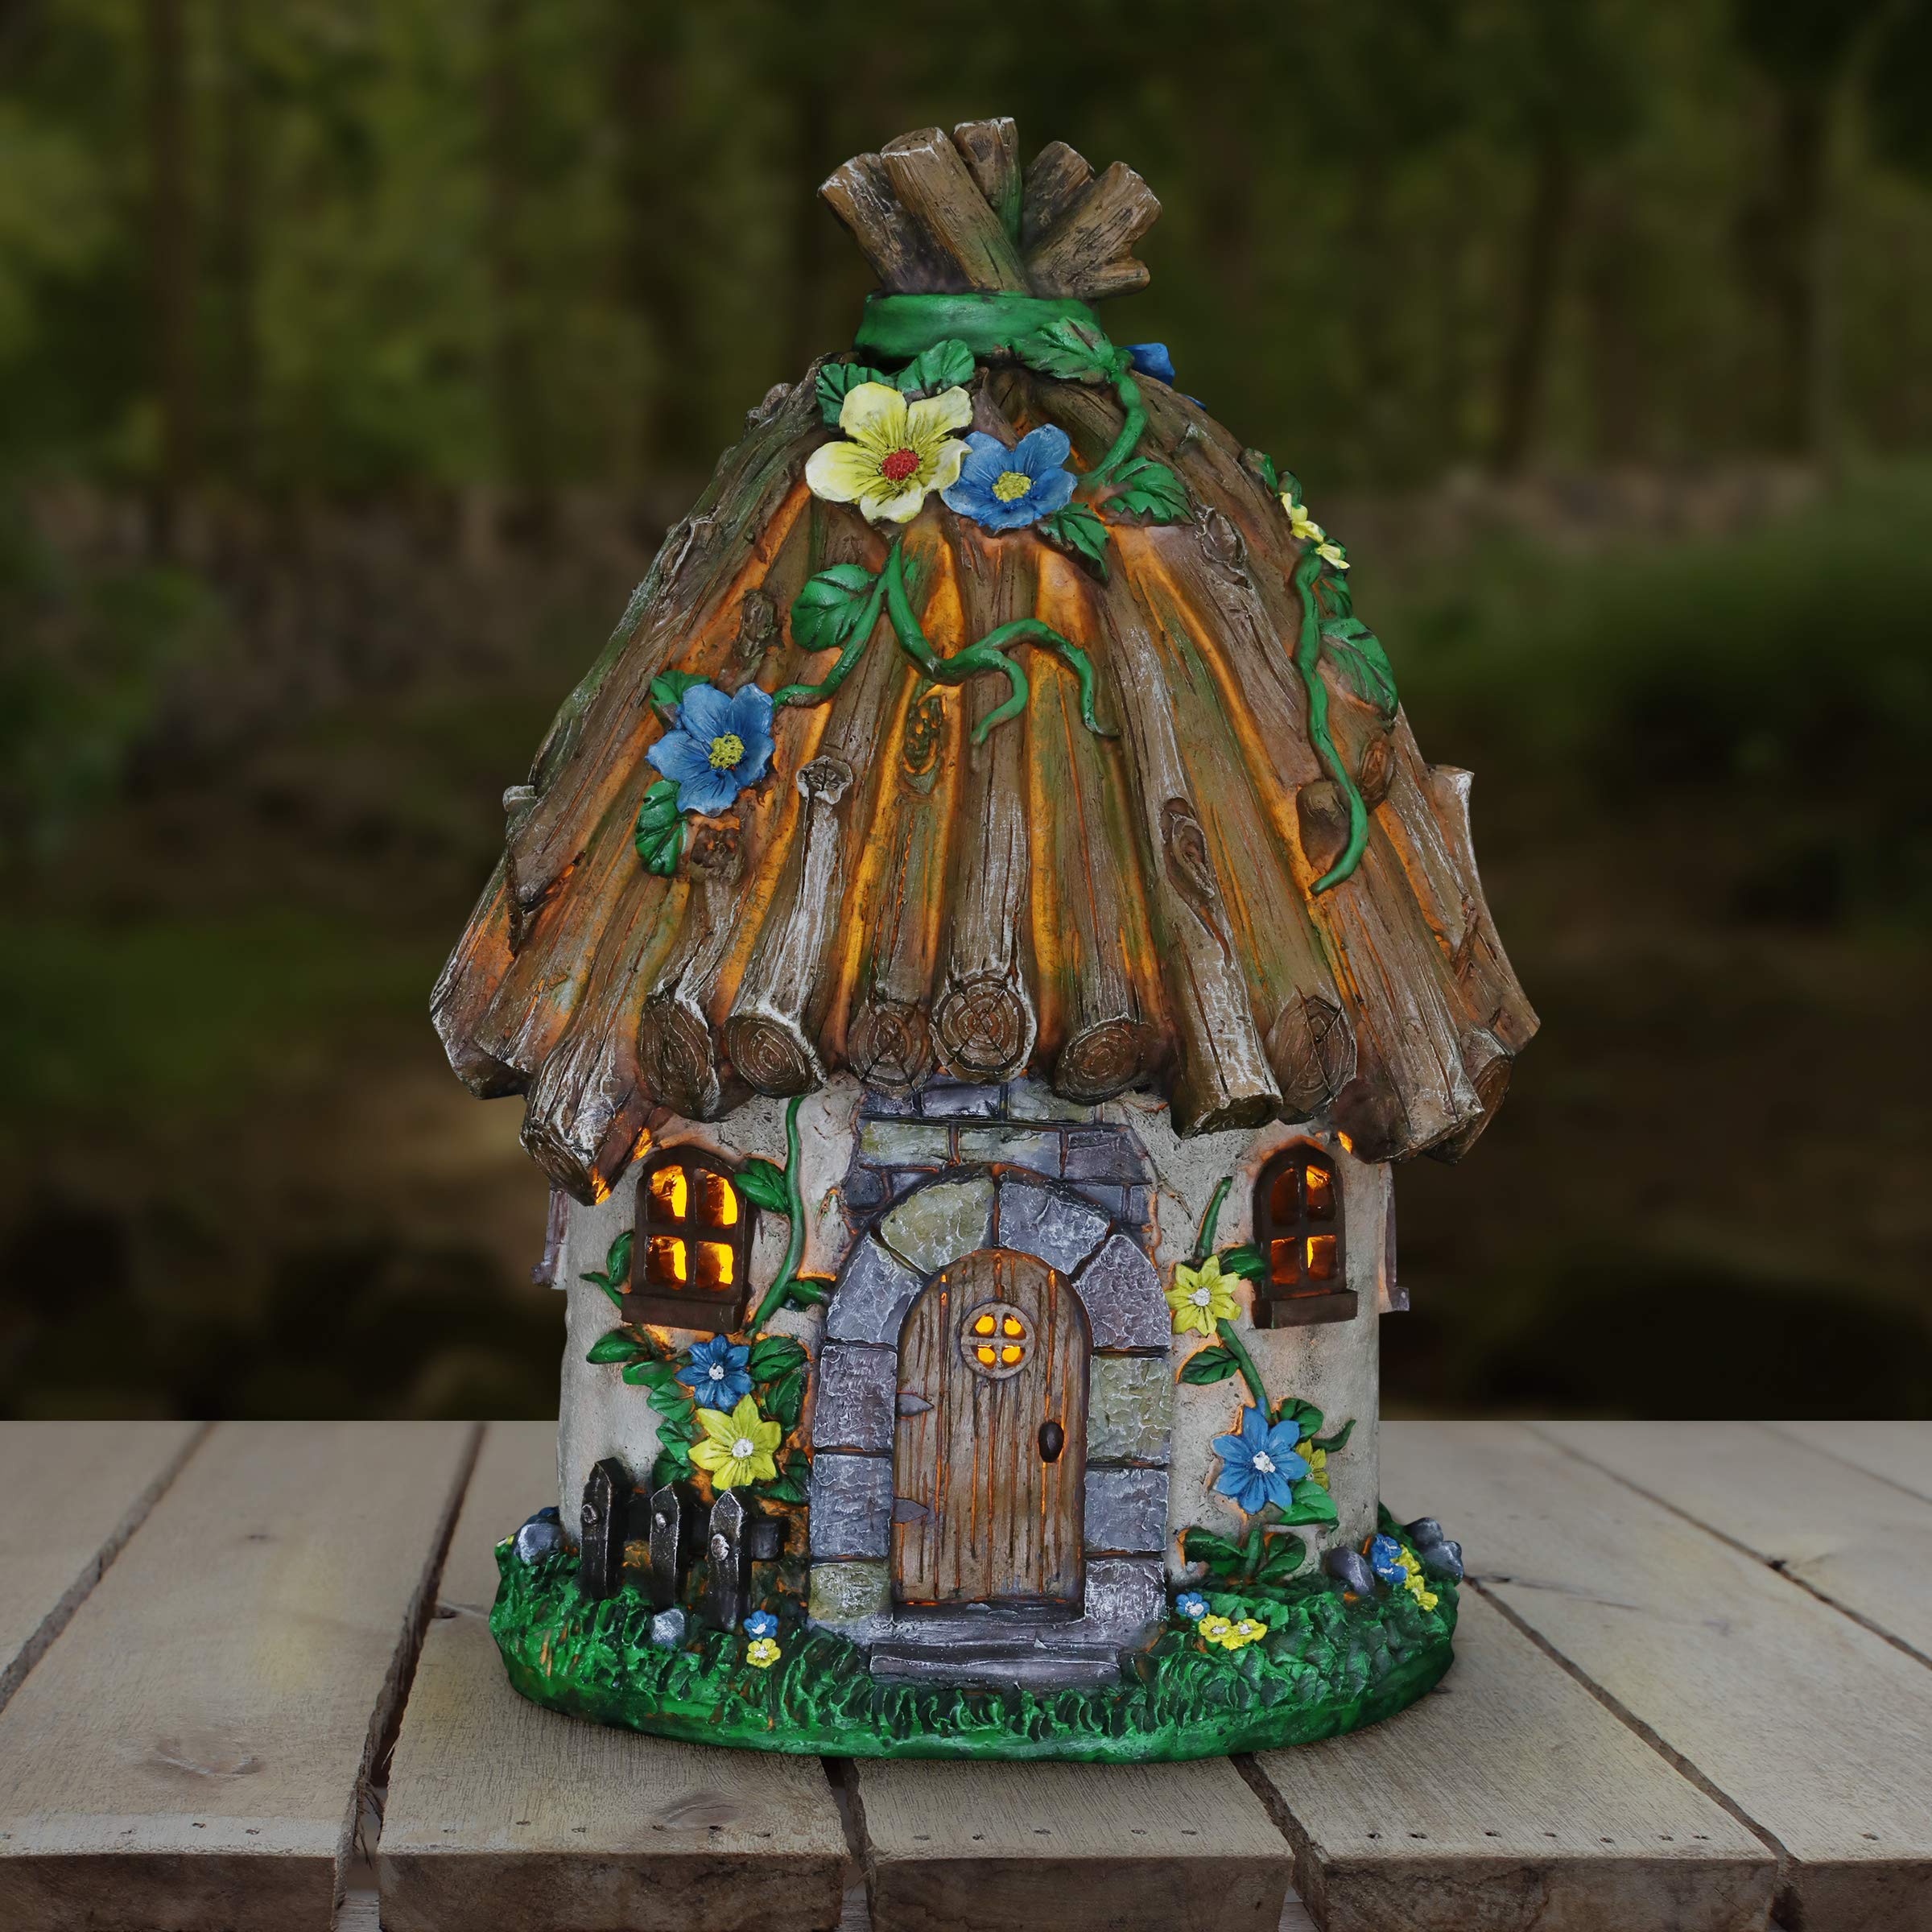 Exhart Twigs Roof Fairy House Outdoor Decor - Fairy Cottage Resin Statue with Solar Garden Lights, Miniature Fairy Hut Solar Home Decor for a Magical Fairy Garden, 9'' L x 9'' W x 15'' H by Exhart (Image #2)